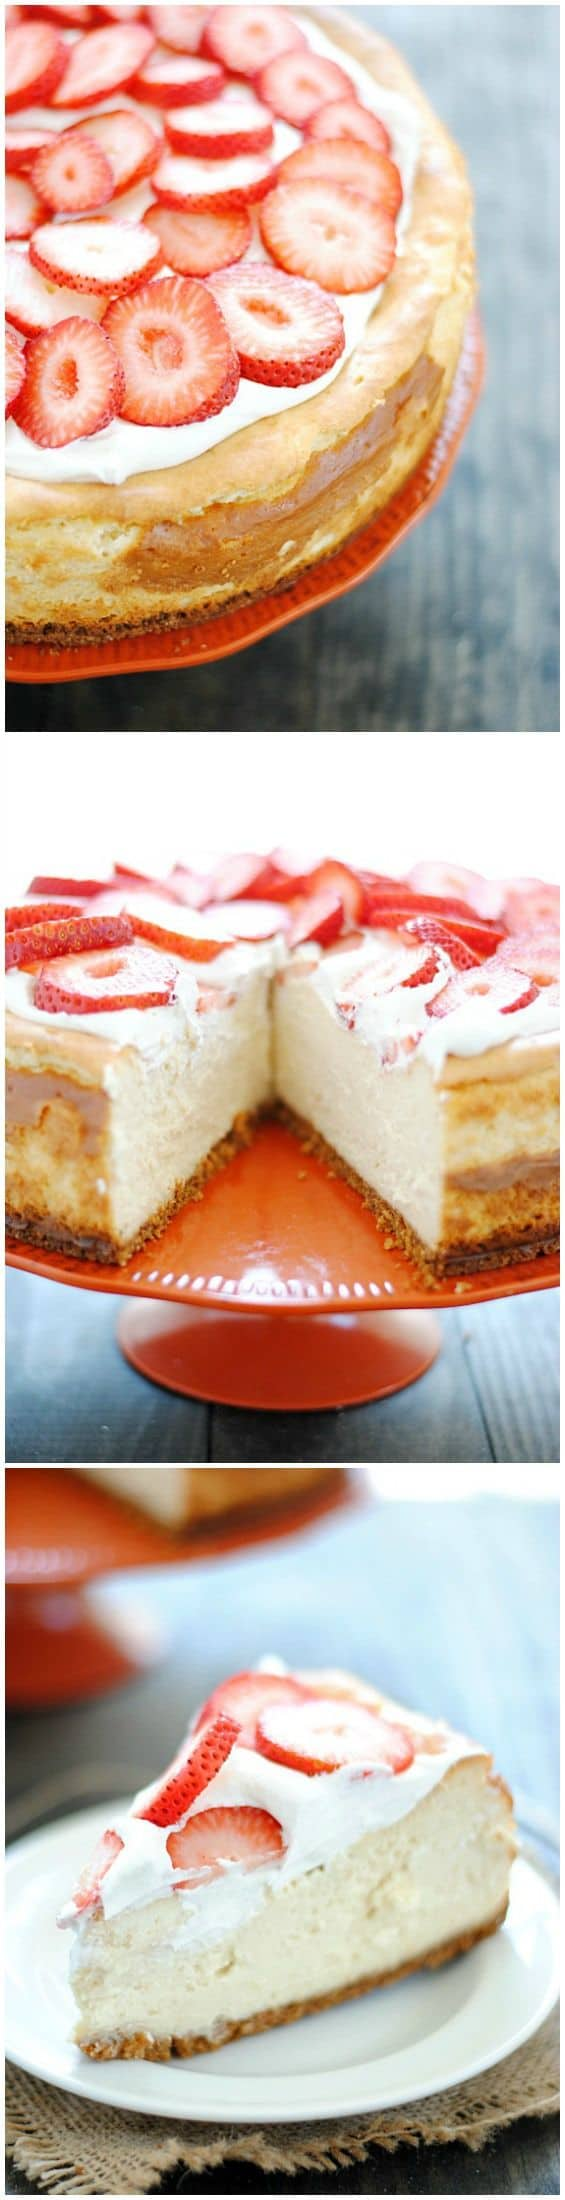 New York-Style Cheesecake | www.somethingswanky.com